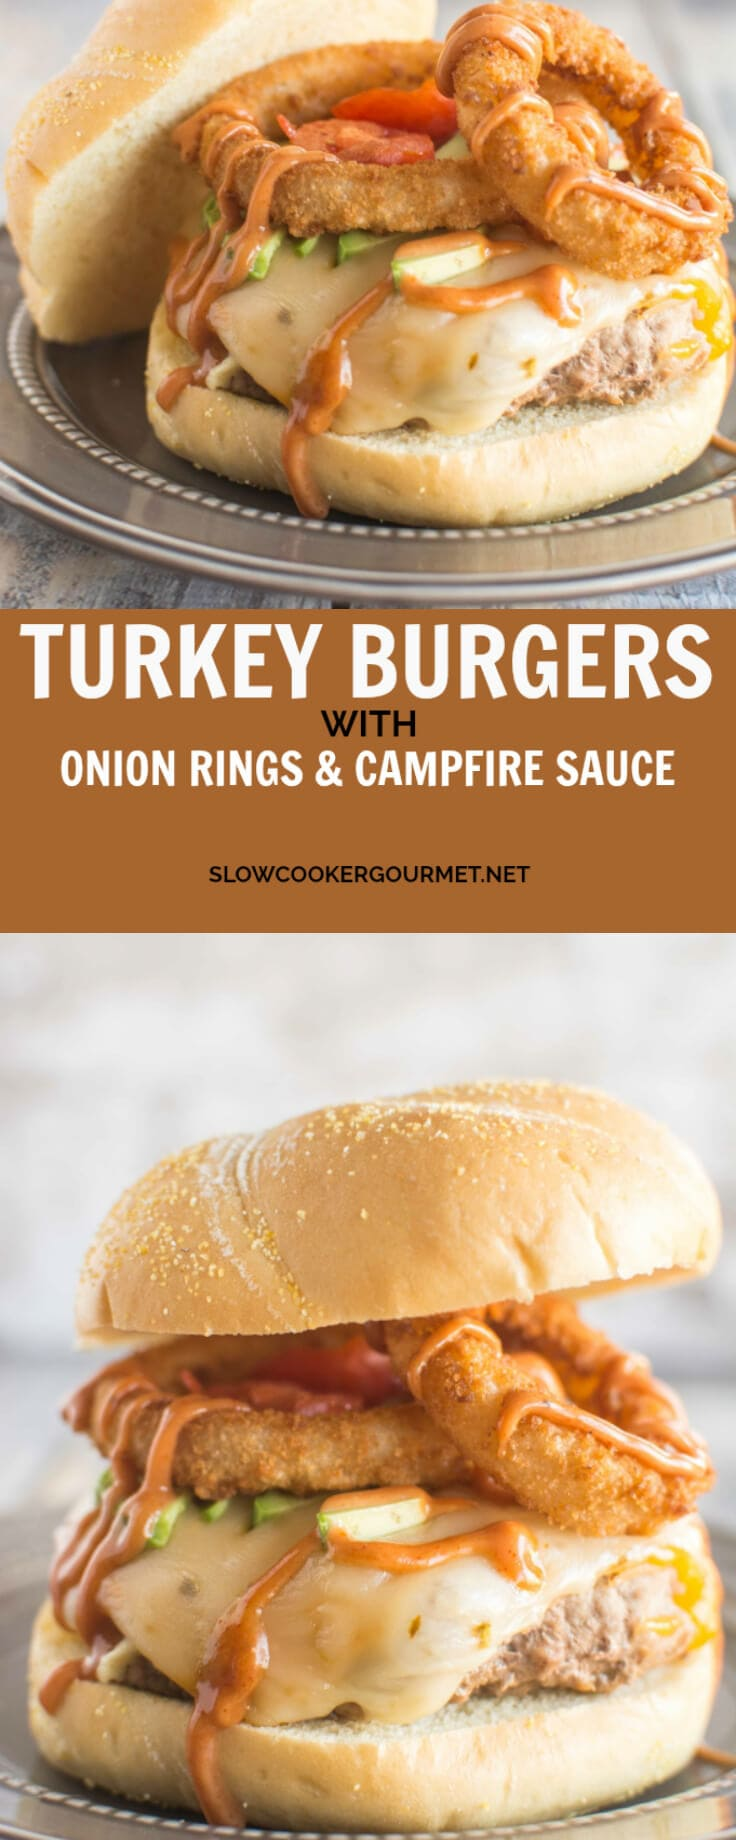 Delicious turkey burger with onion rings and a 3 ingredient campfire sauce.